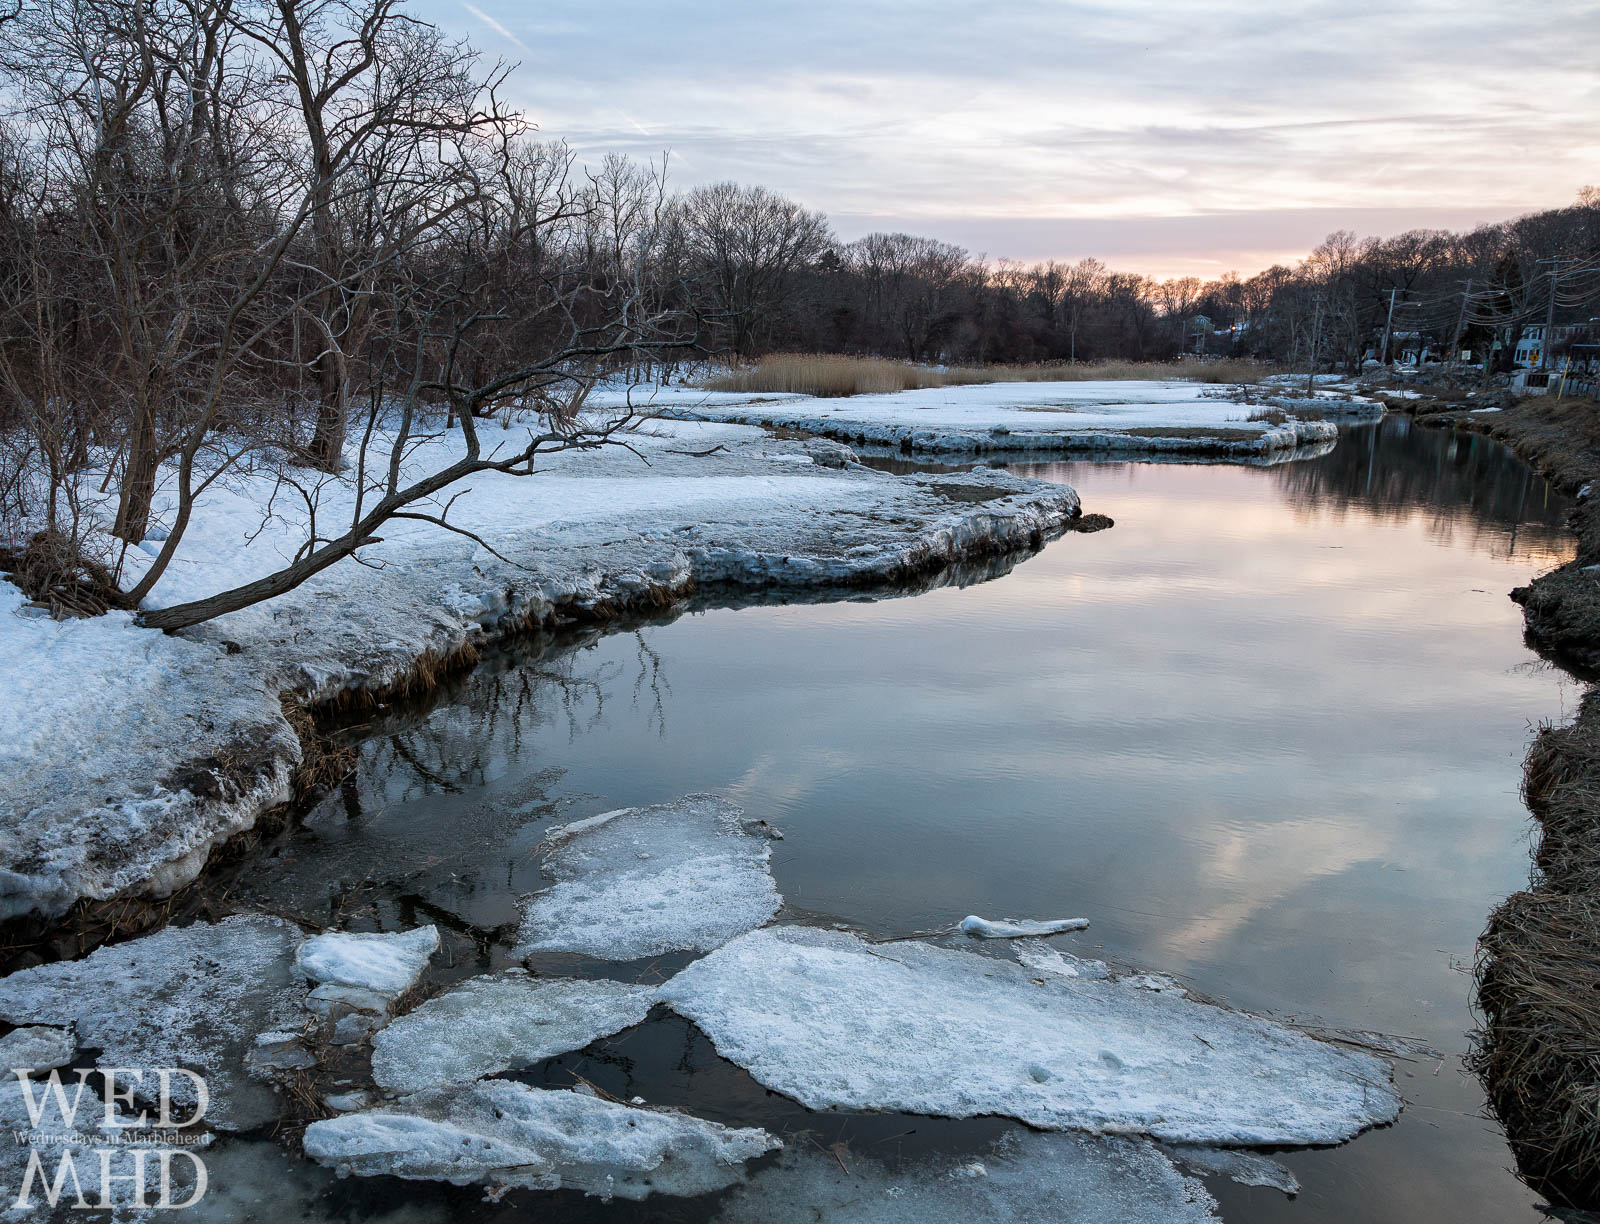 sunset light reflects on the Forest River with cracked ice floating in the water